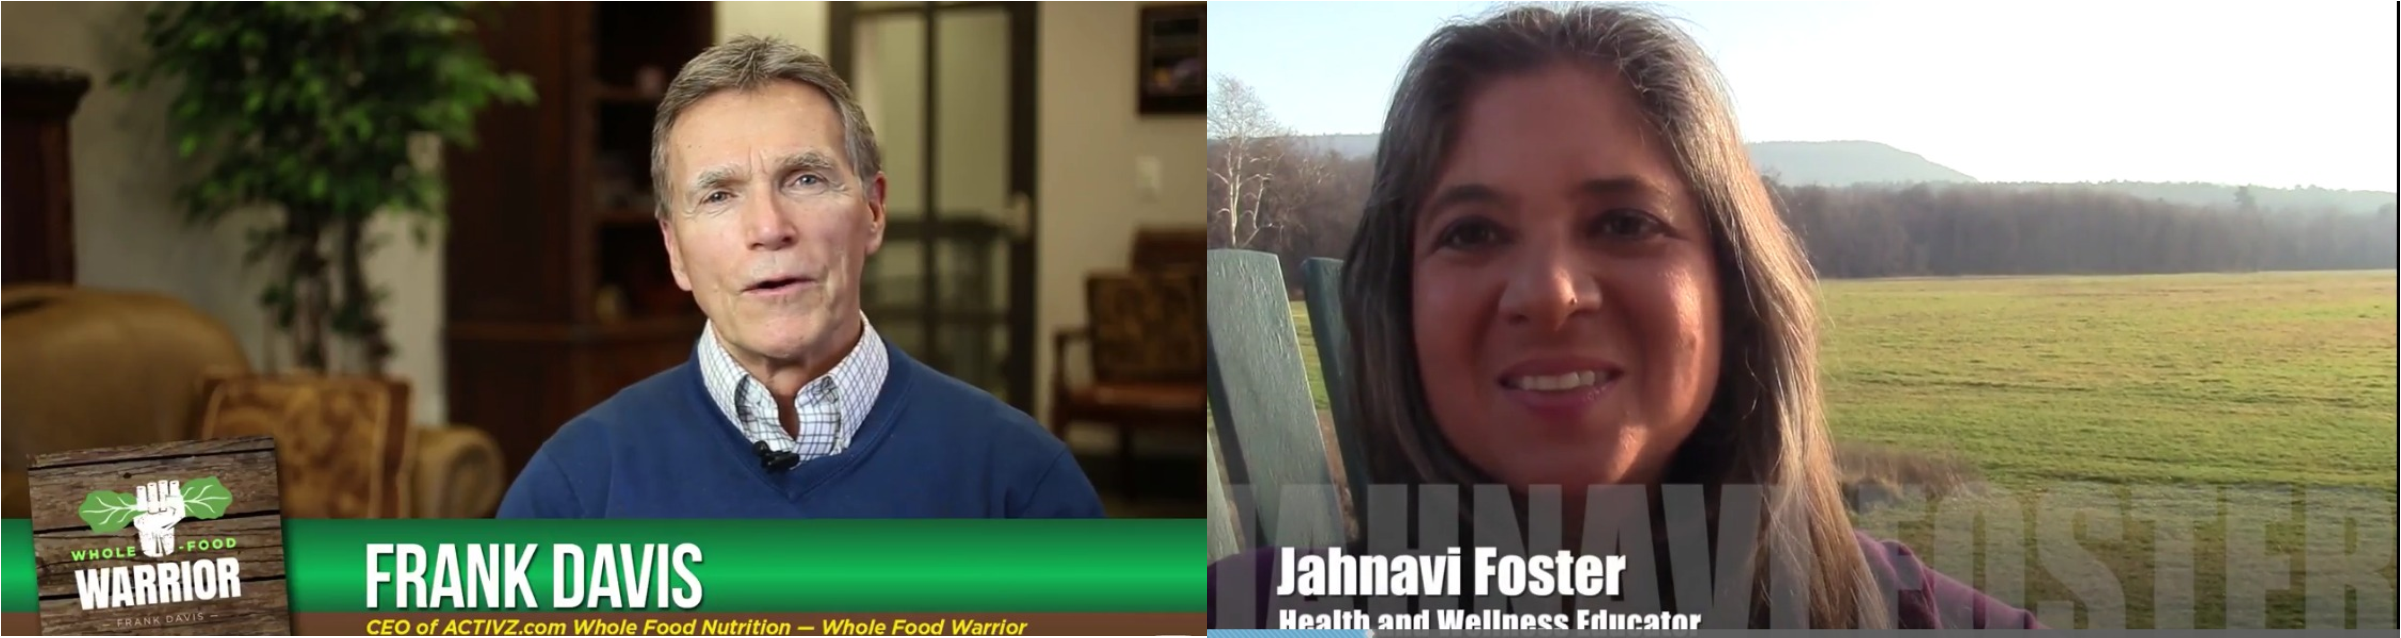 Frank Davis Presents Whole Food Warrior Jahnavi Foster on the Really Cool Humans TV Network